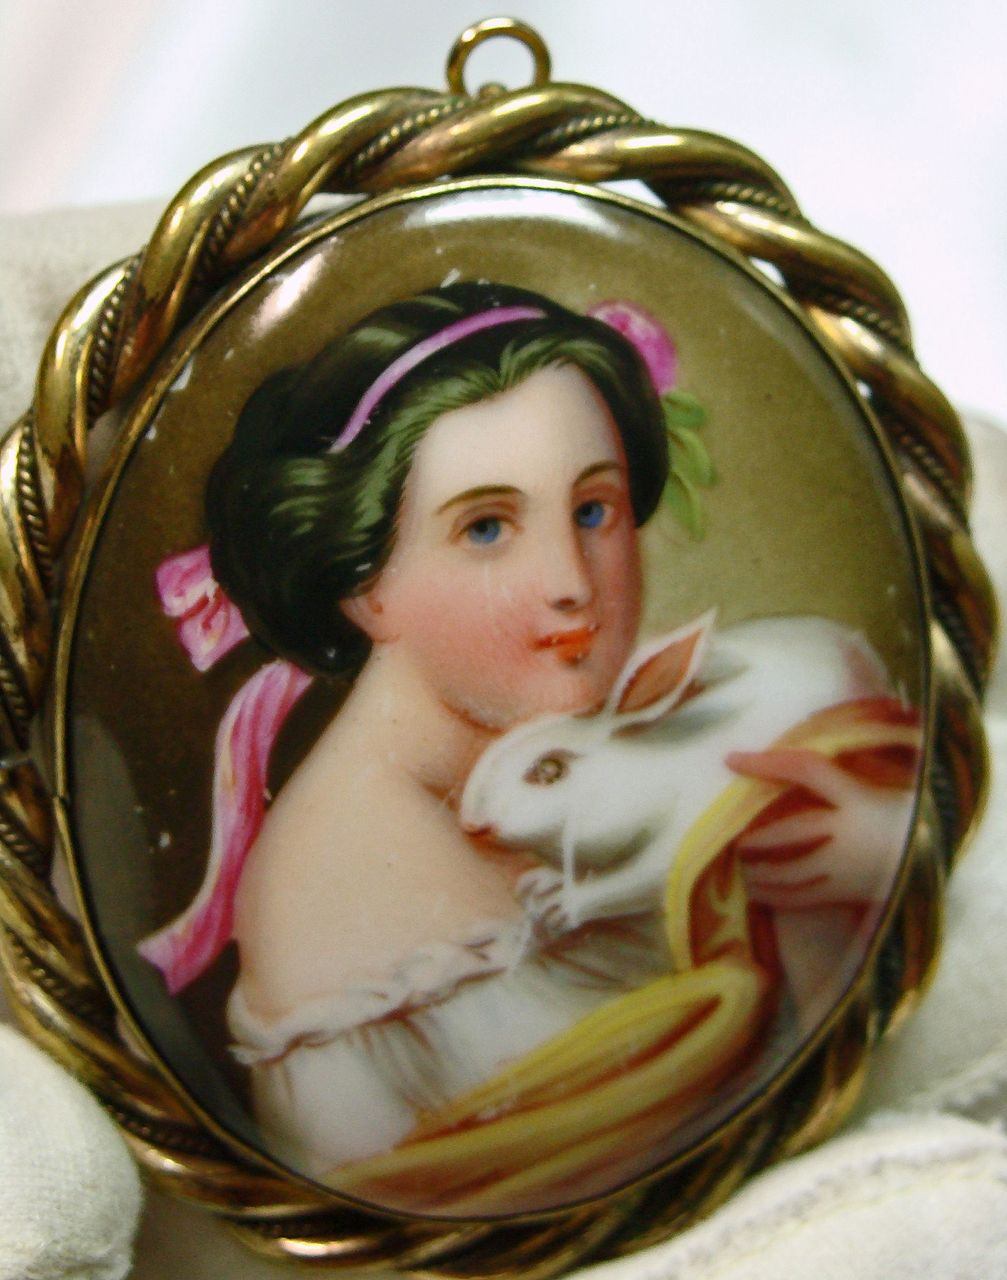 Victorian Gold Over Brass Broach Portrait of a Woman Holding a Bunny